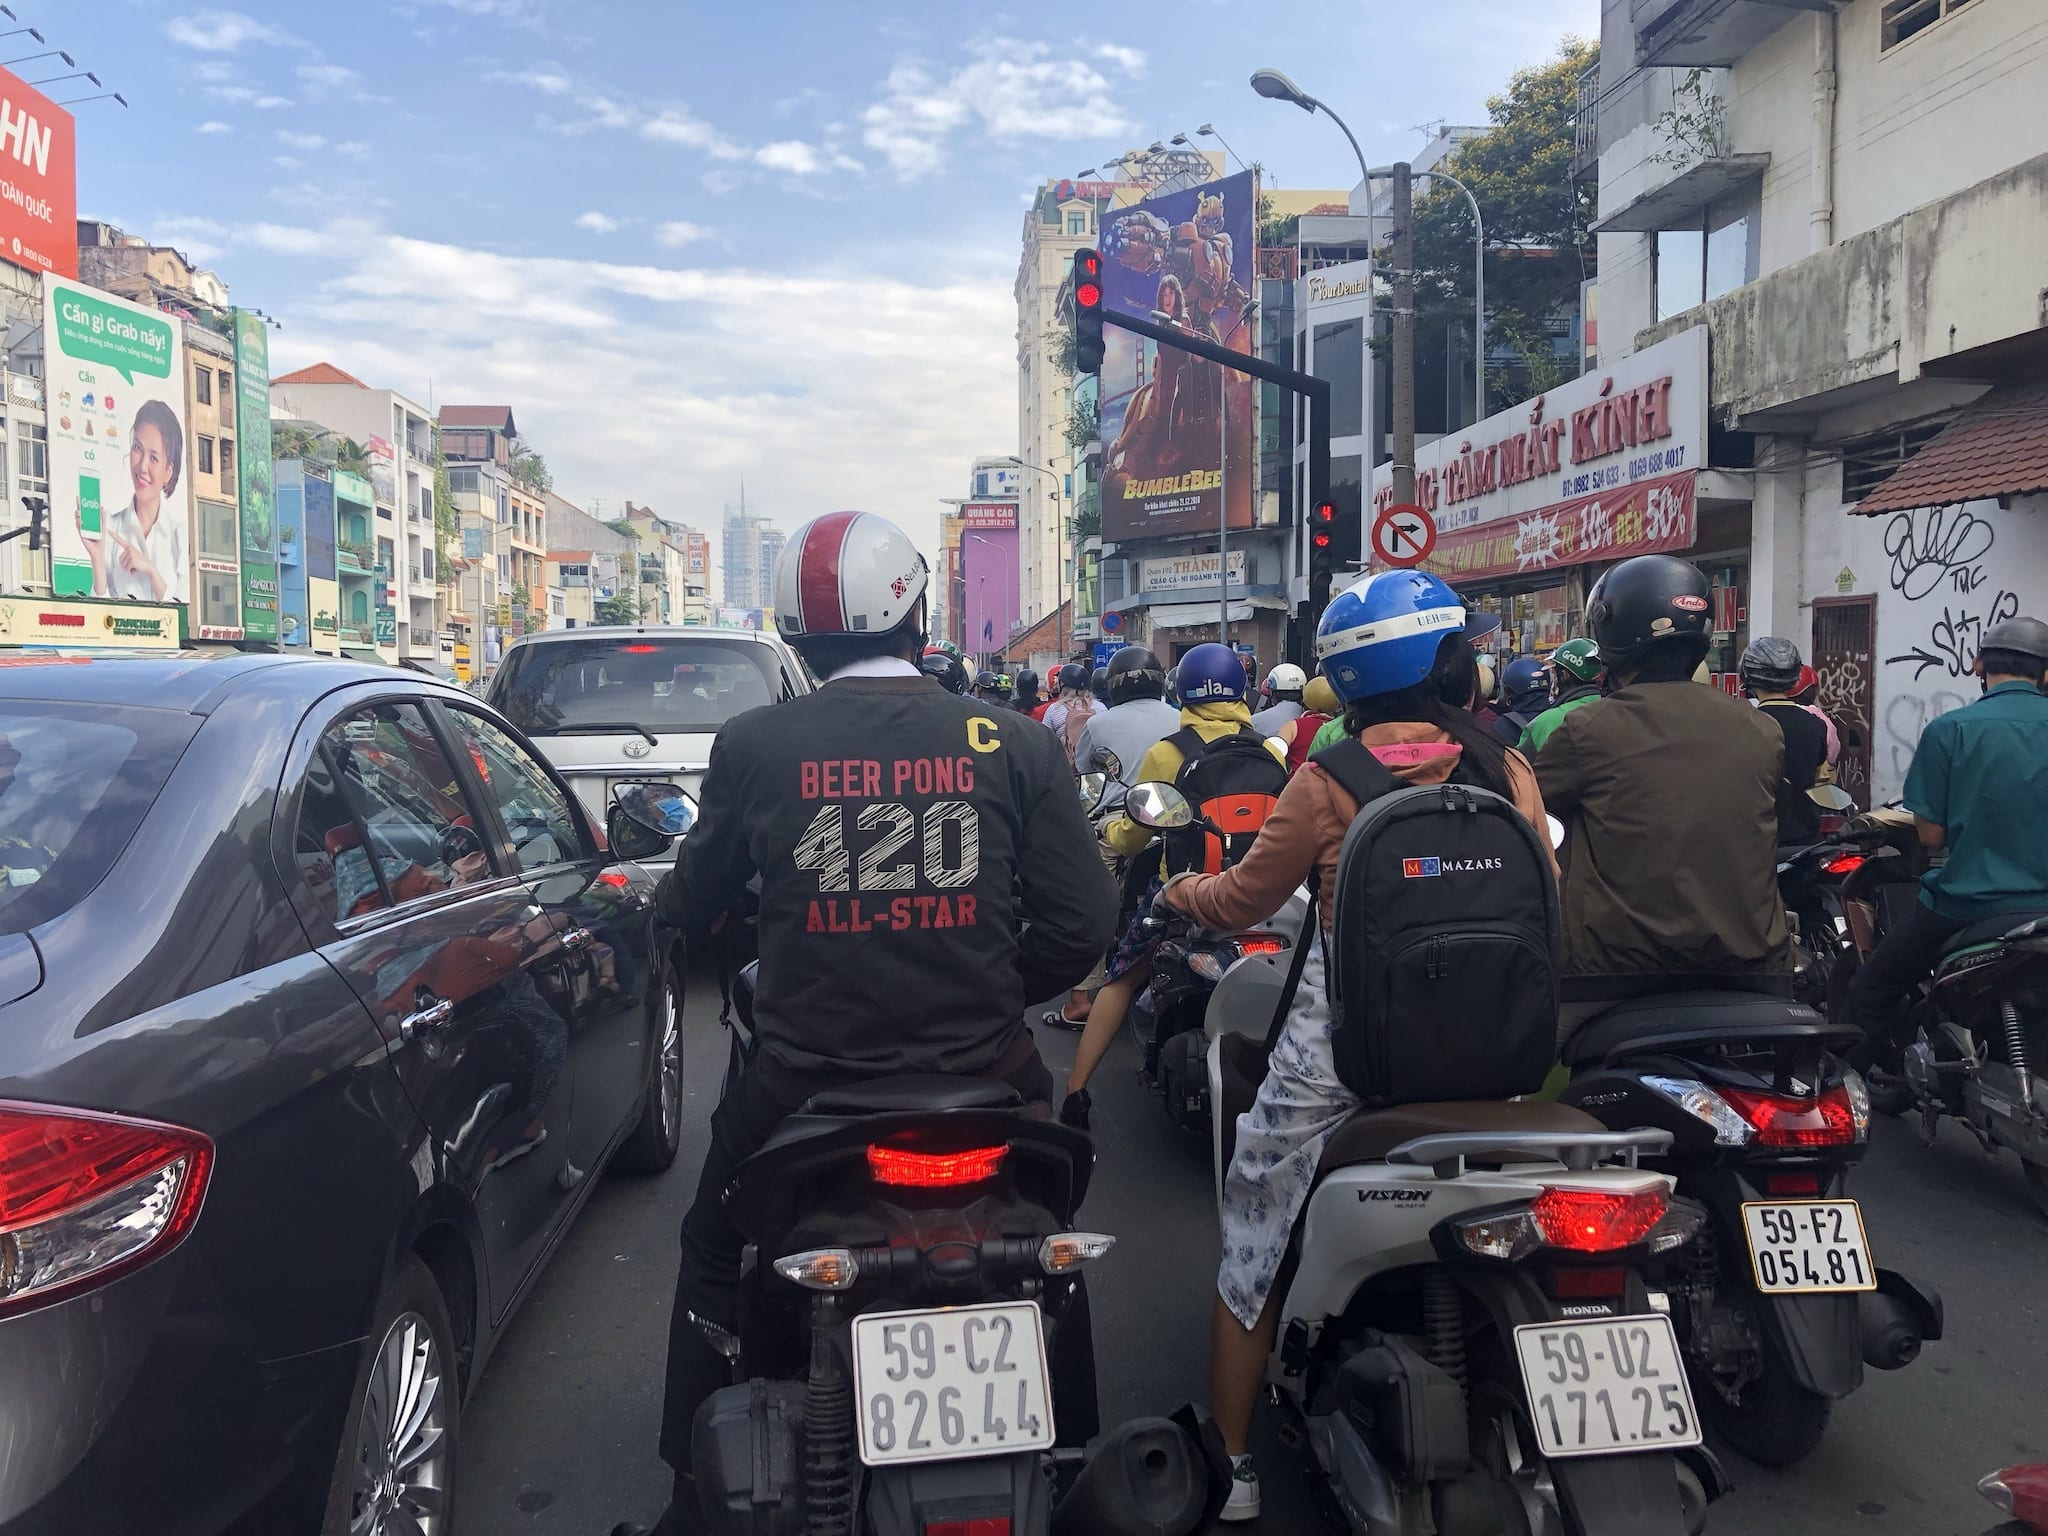 Driving a Motorbike in Saigon Vietnam